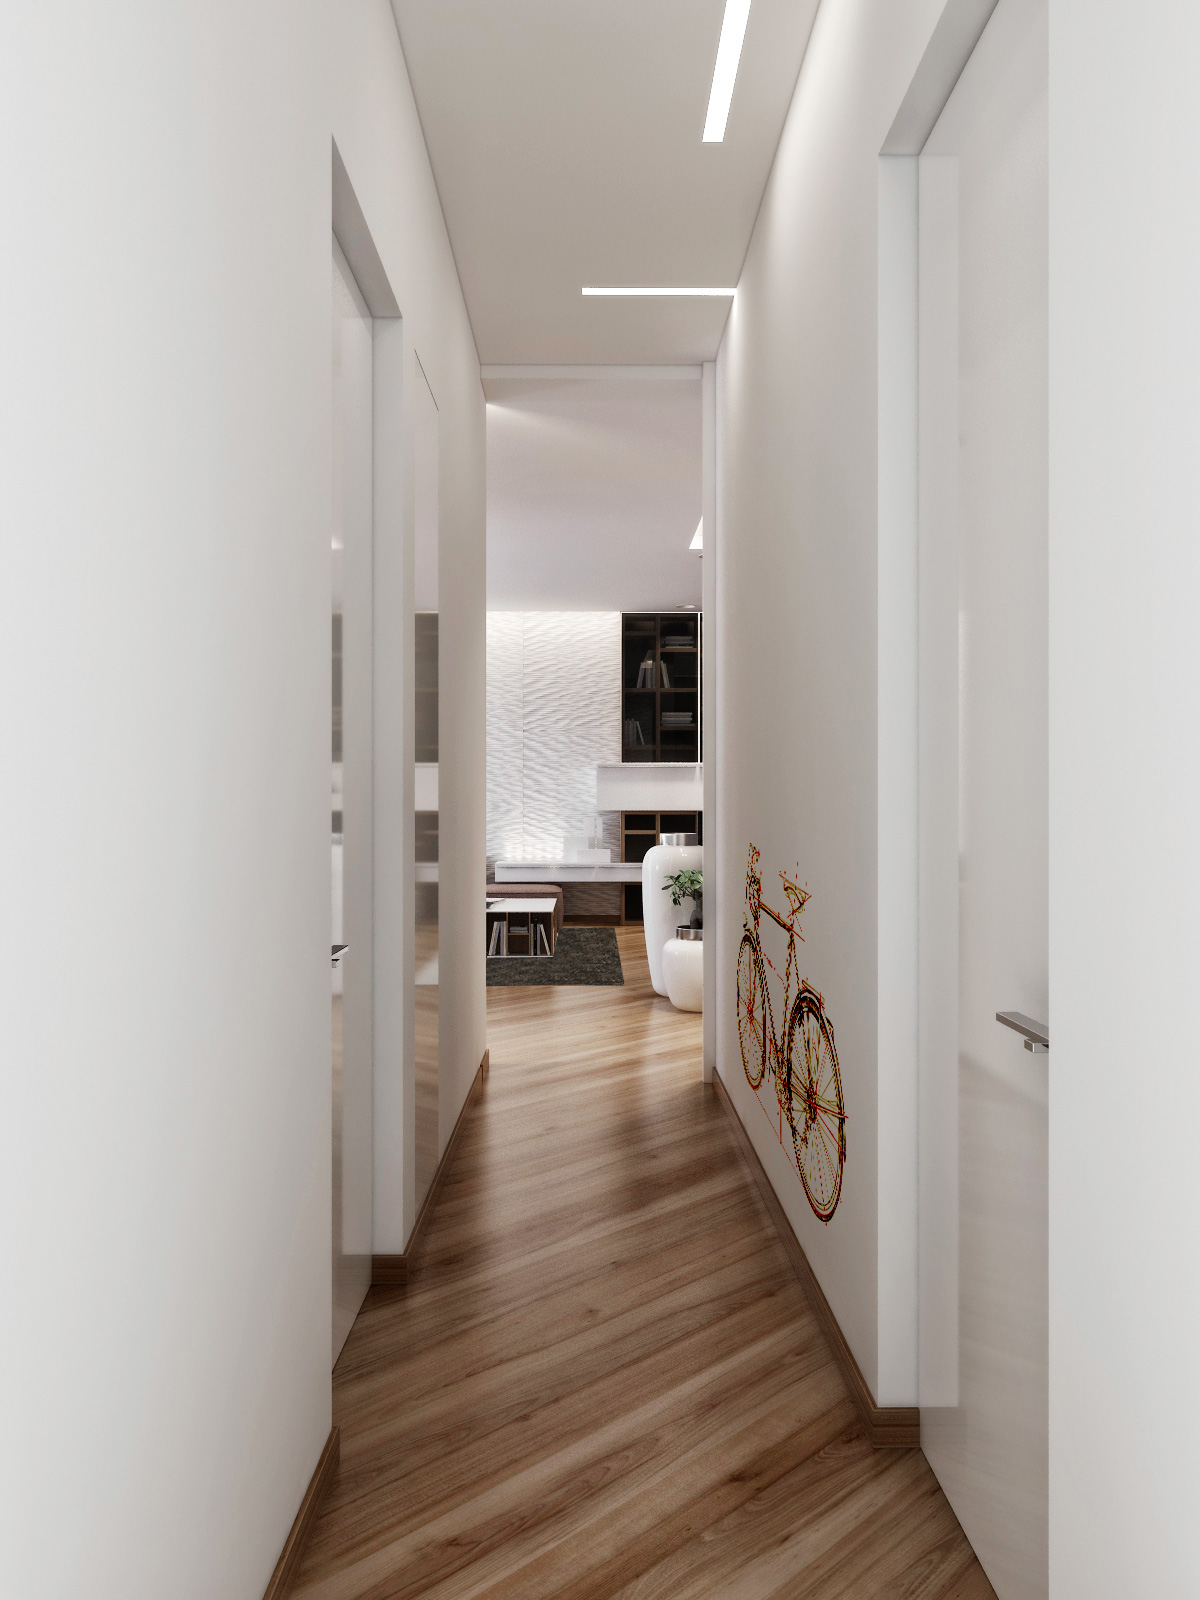 breathtaking-white-interior-corridor-art-with-bicycle-wall-decals-as-well-as-unique-wood-flooring-laminate